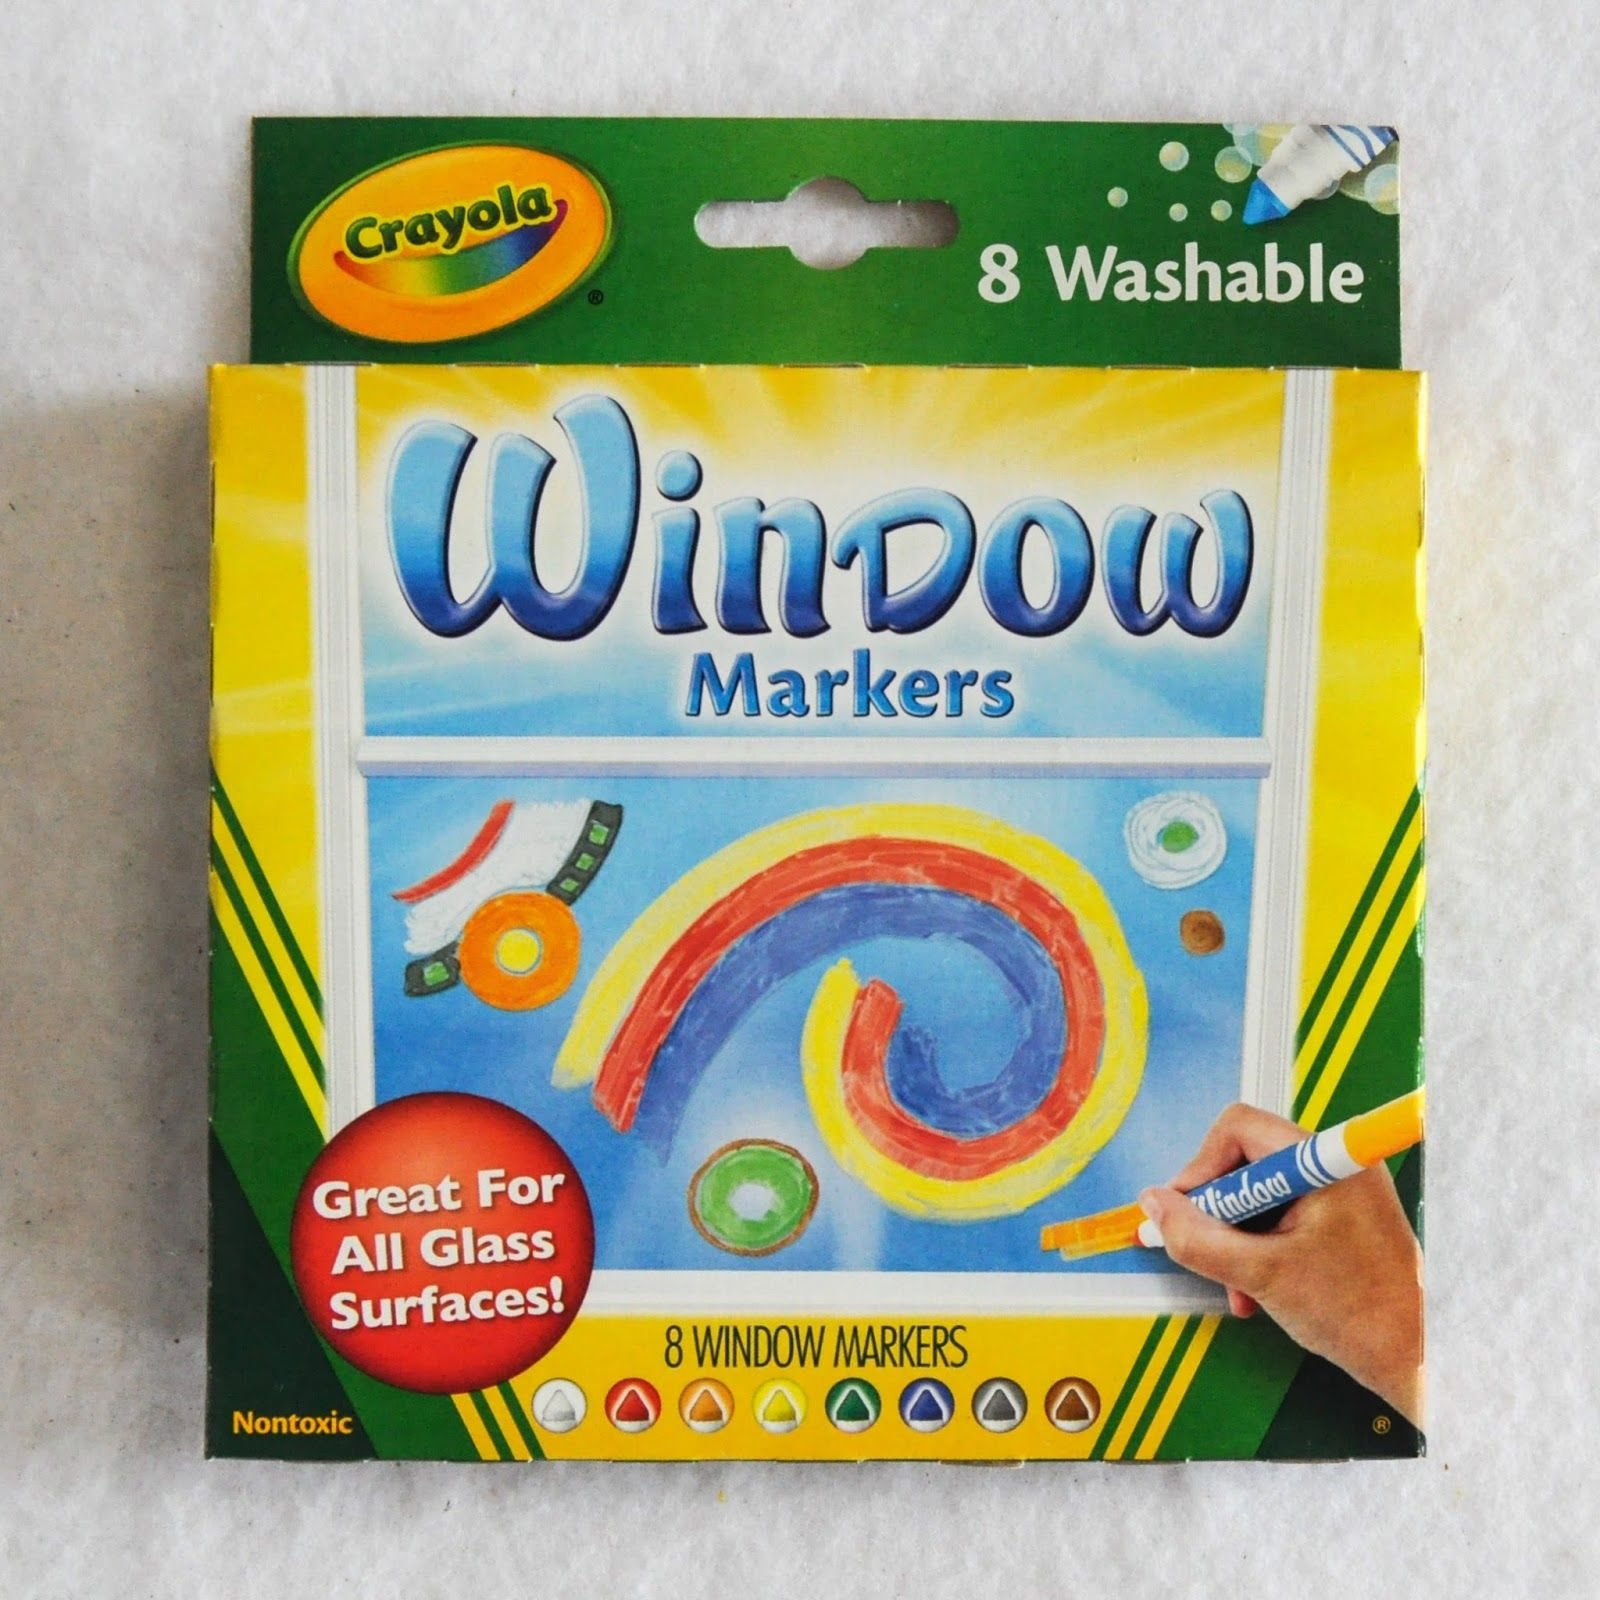 8 Count Crayola Window Markers: What\'s Inside the Box